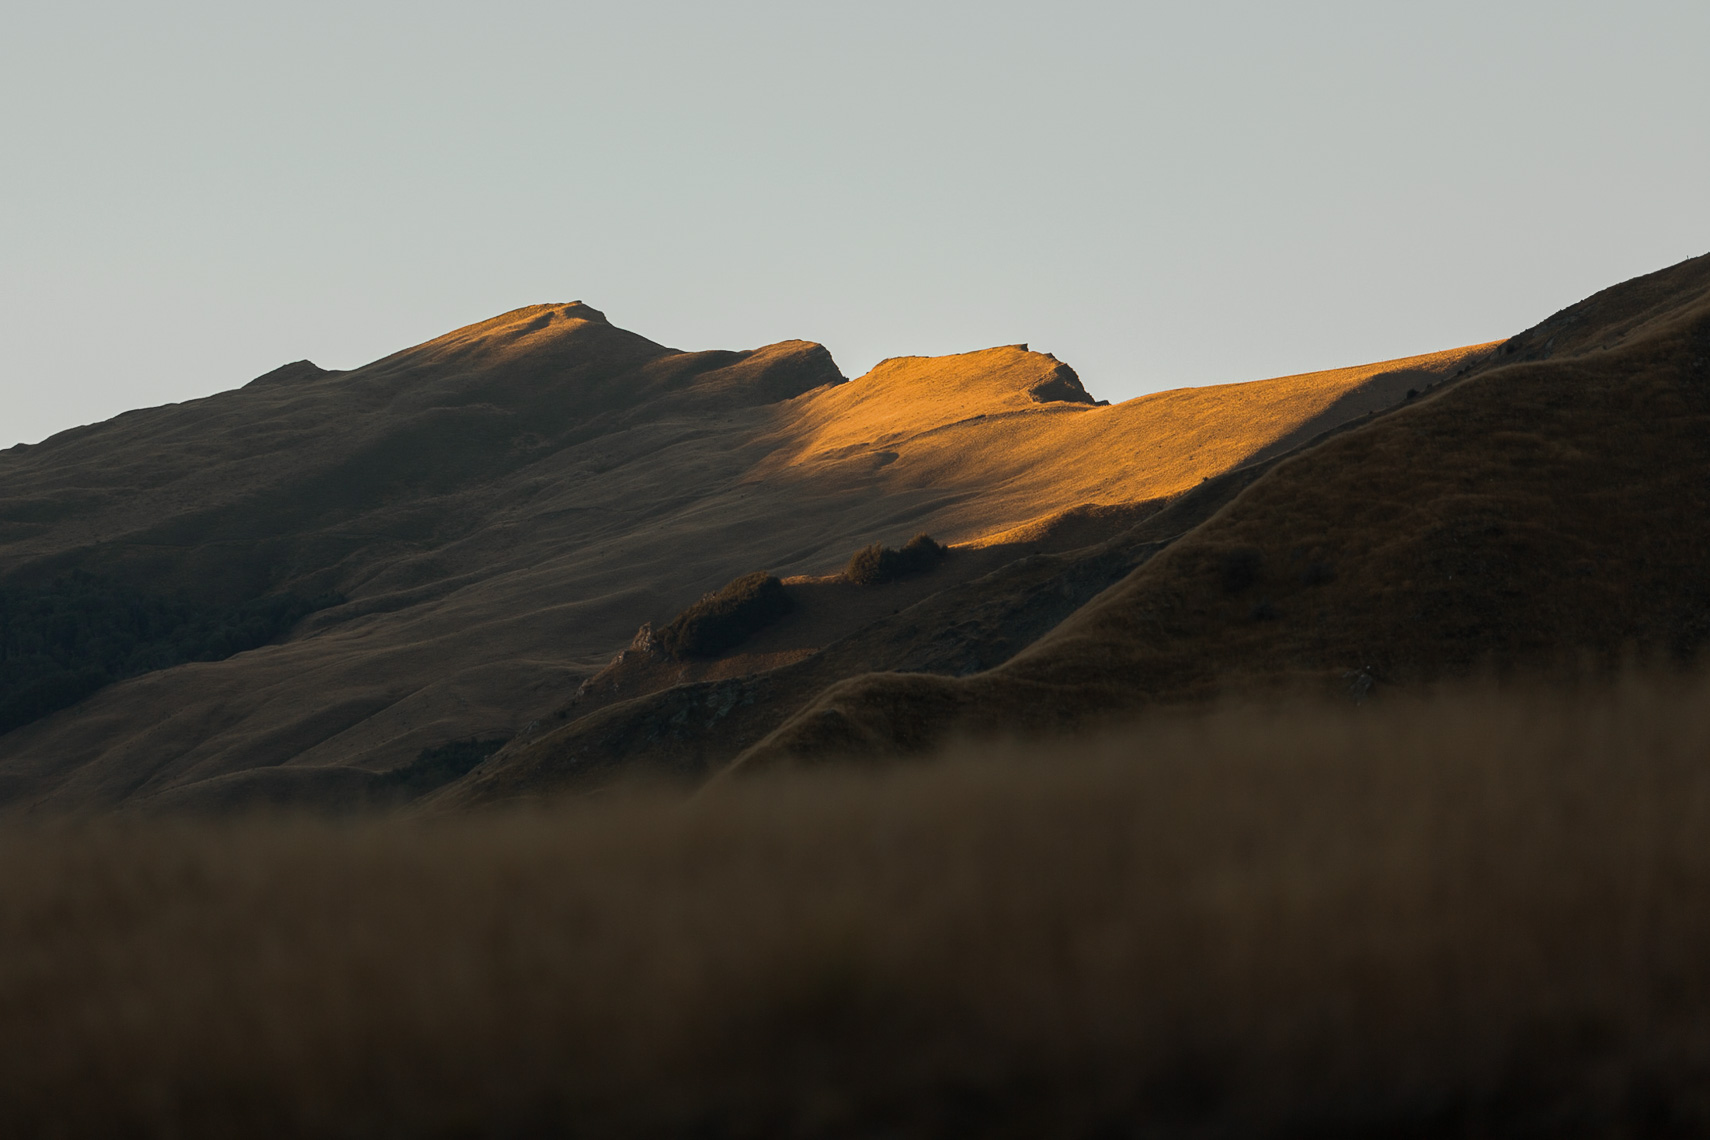 Last light of evening plays across the New Zealand tussock hills by Paul Green Photographer